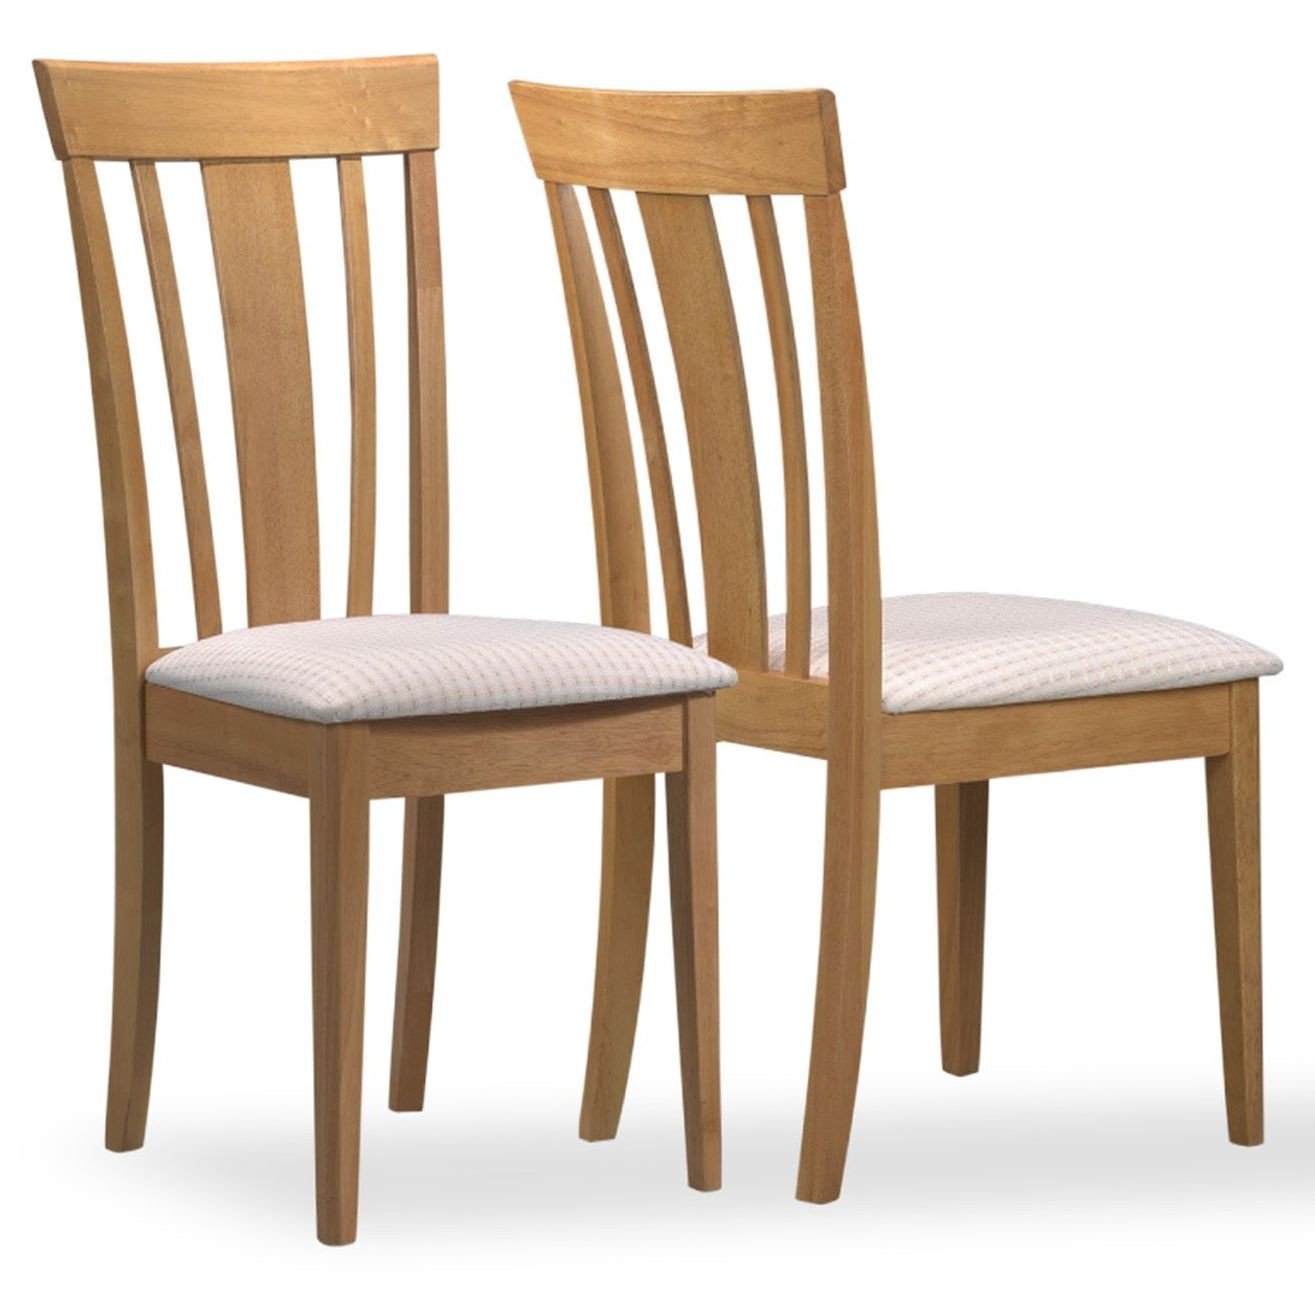 maple dining room chairs chair cover rentals kelowna 4358 fabric side set of 2 from monarch i